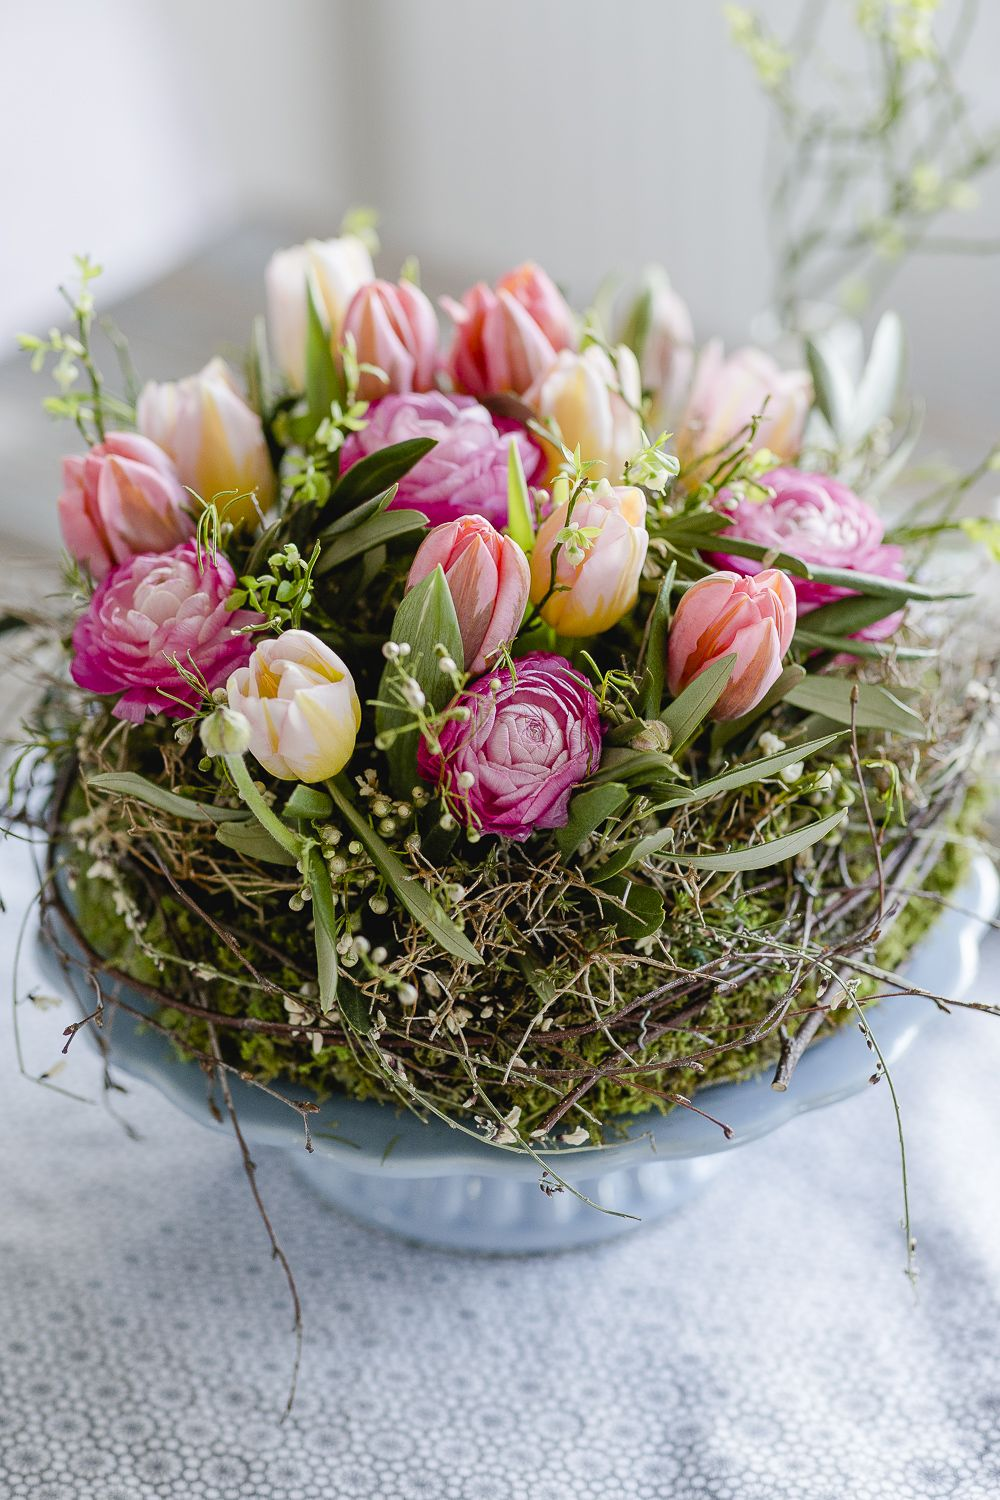 Photo of Natural decoration ideas for spring and Easter • Pomponetti